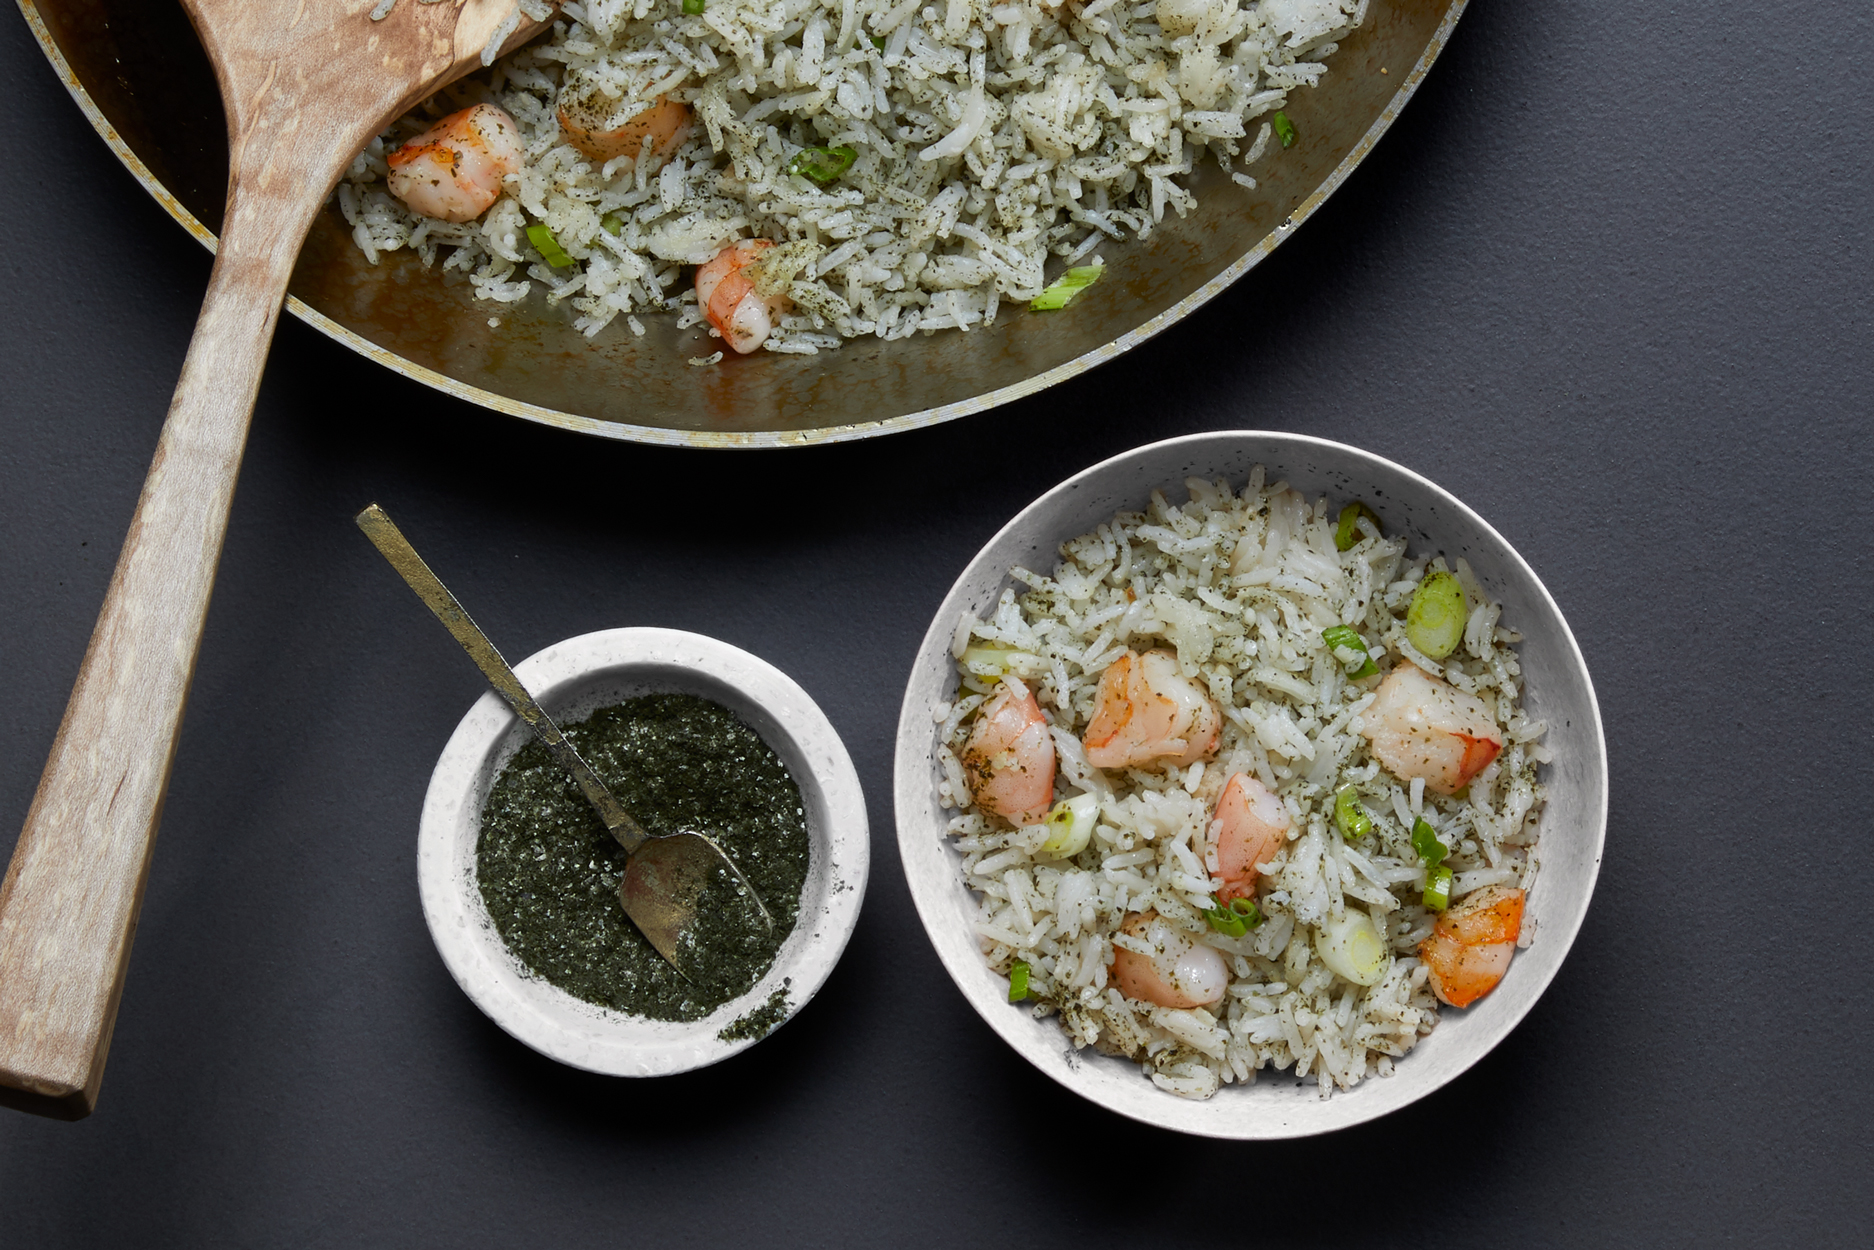 Nori Dust Is the Secret to Perfect Fried Rice